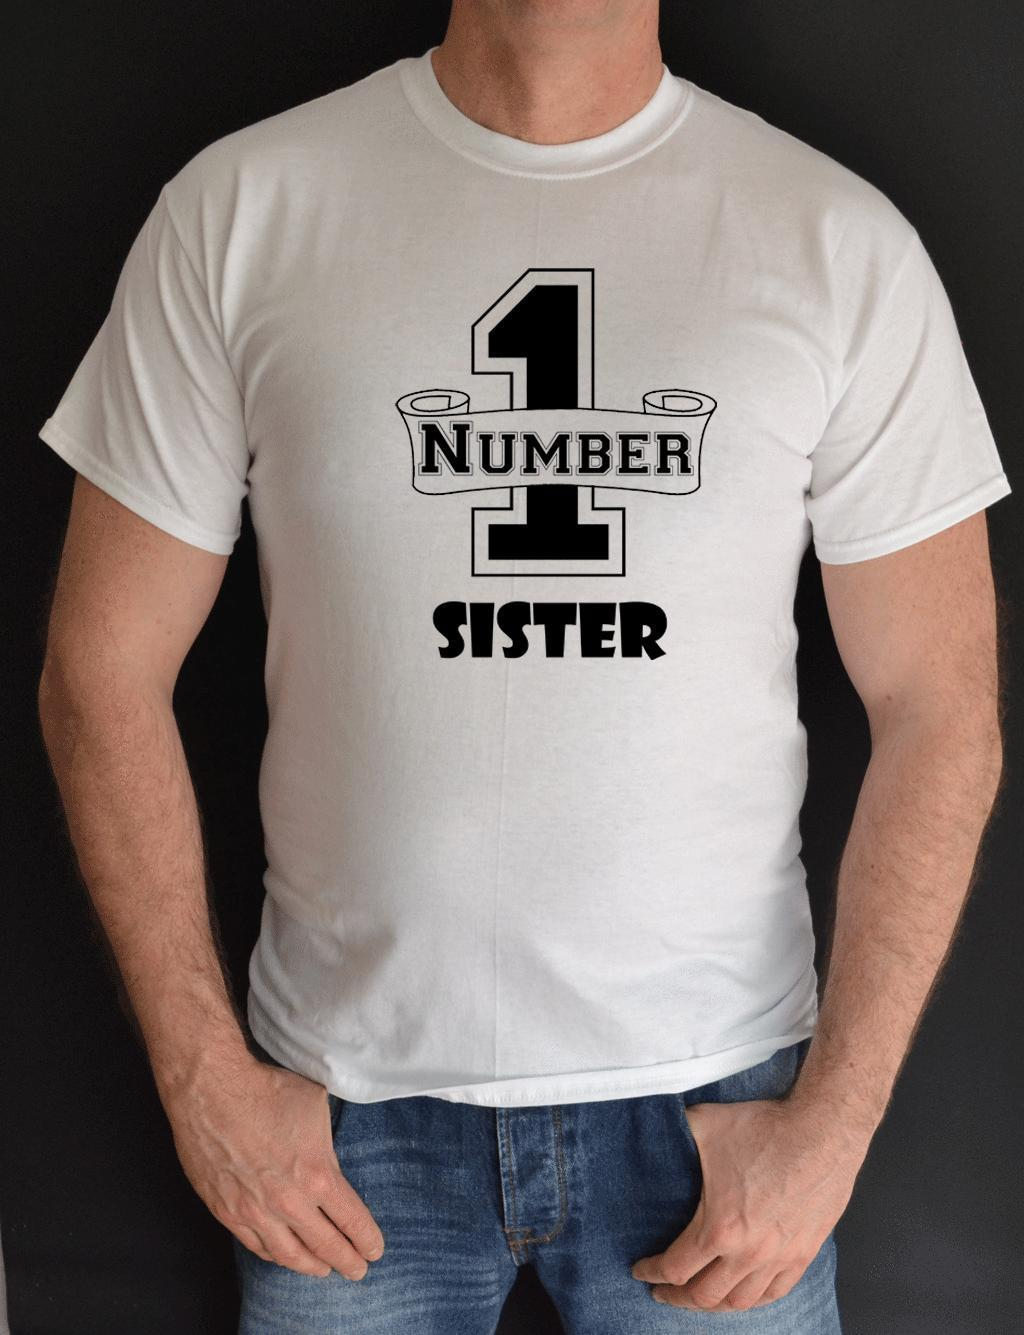 NUMBER 1 ONE SISTER BIRTHDAYGIFT FUN T SHIRT Tee Shirt Sites From Lijian041 1137